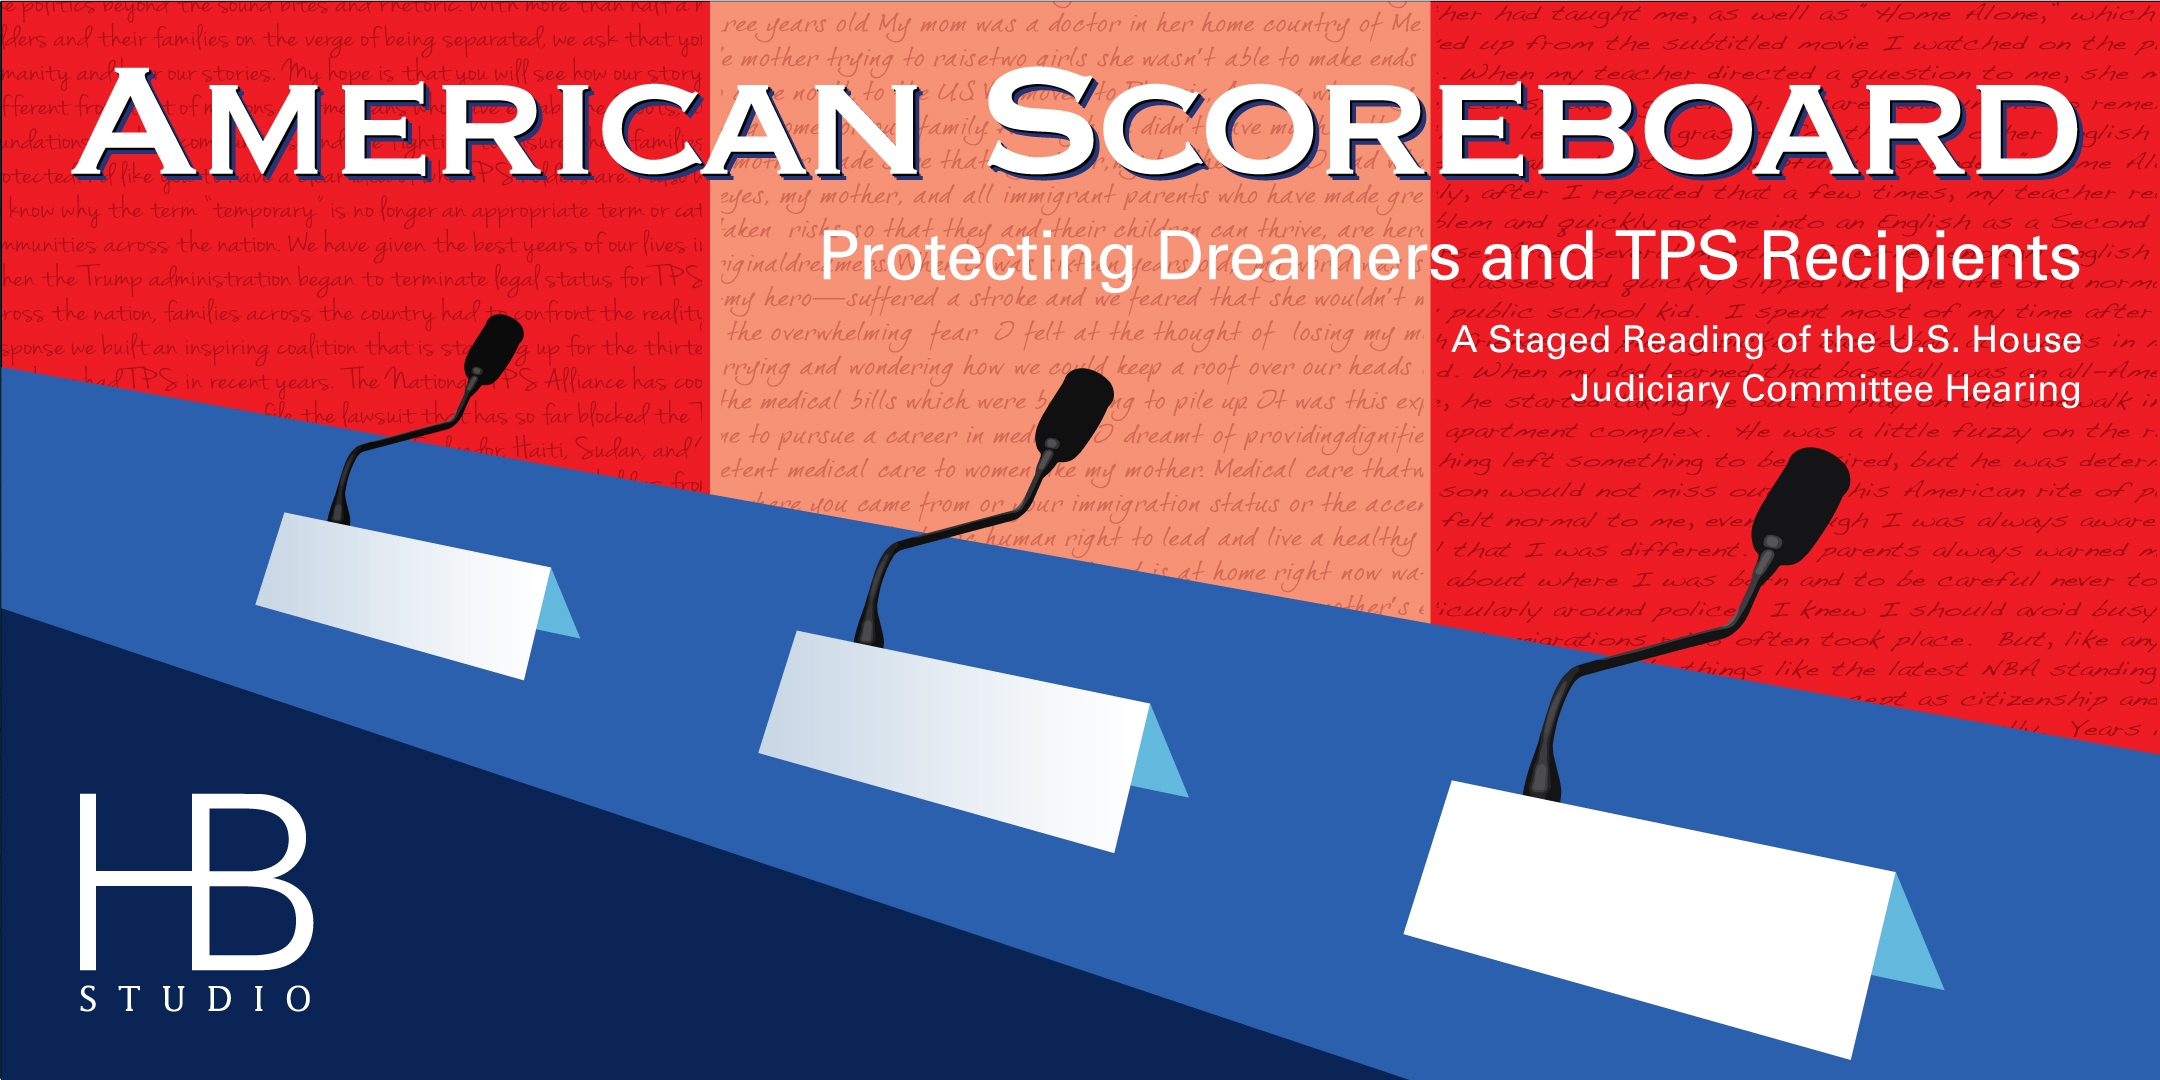 American Scoreboard Protecting Dreamers and TPS Recipients Staged Reading